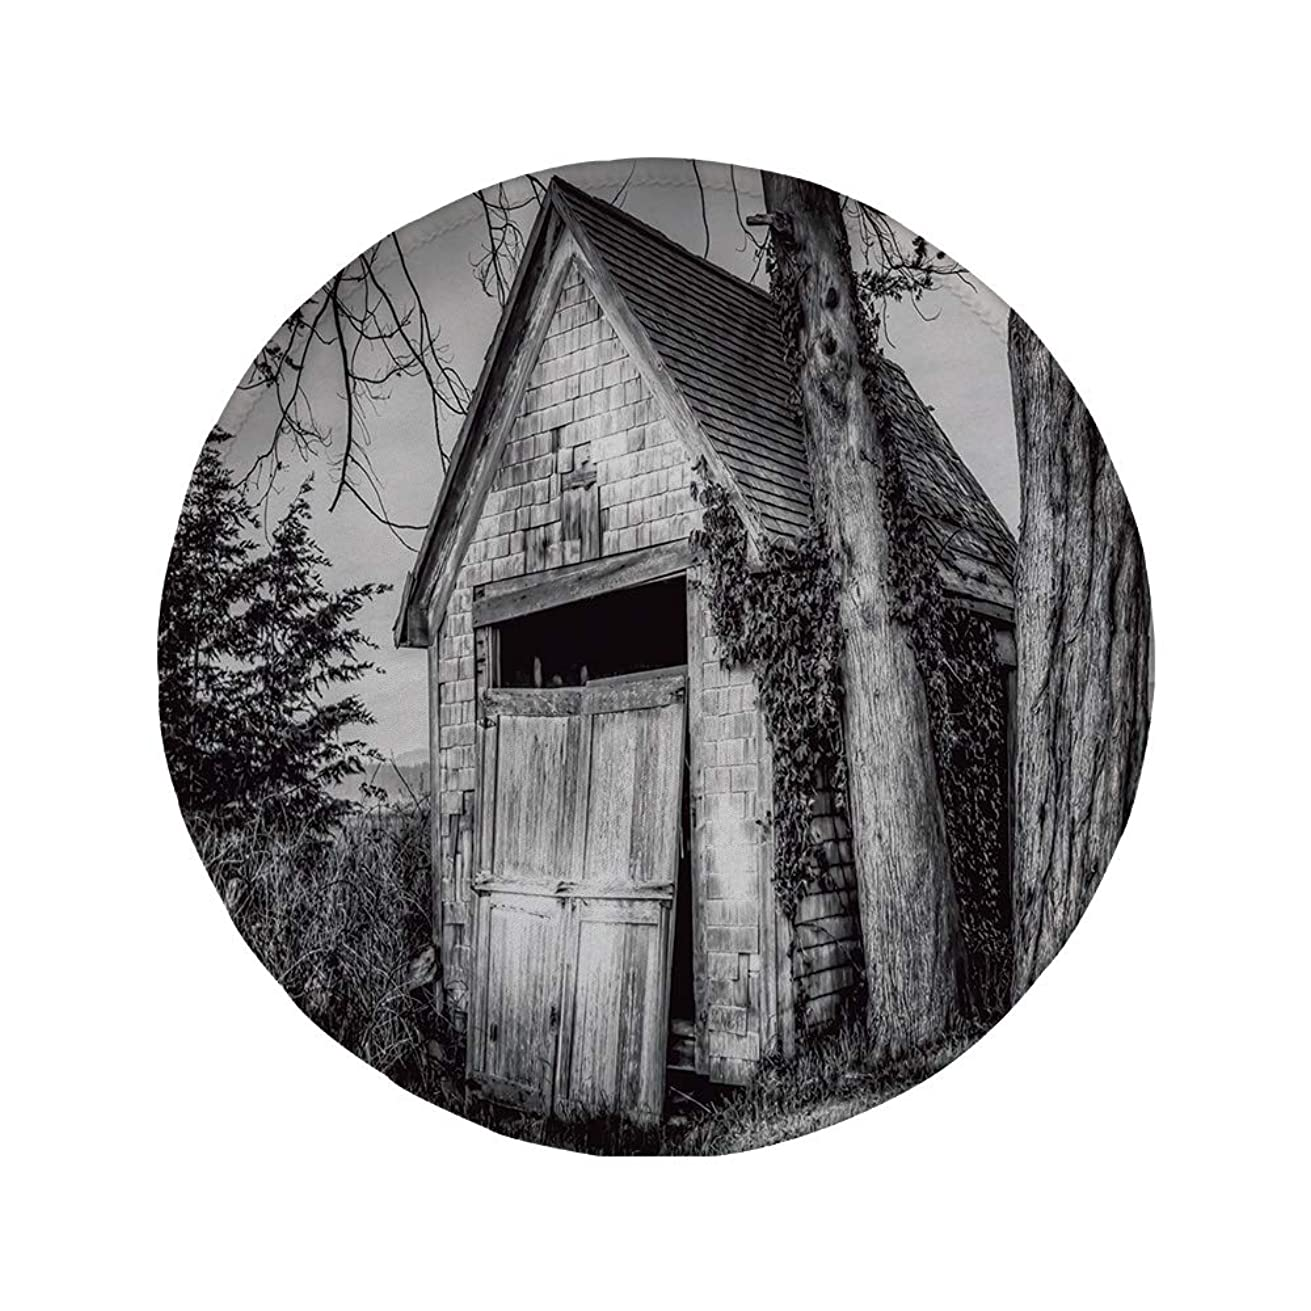 Non-Slip Rubber Round Mouse Pad,Rustic Home Decor,Old Ruined Stranded Stone Barn Farmhouse Rural Countryside Image,Black and White,7.87